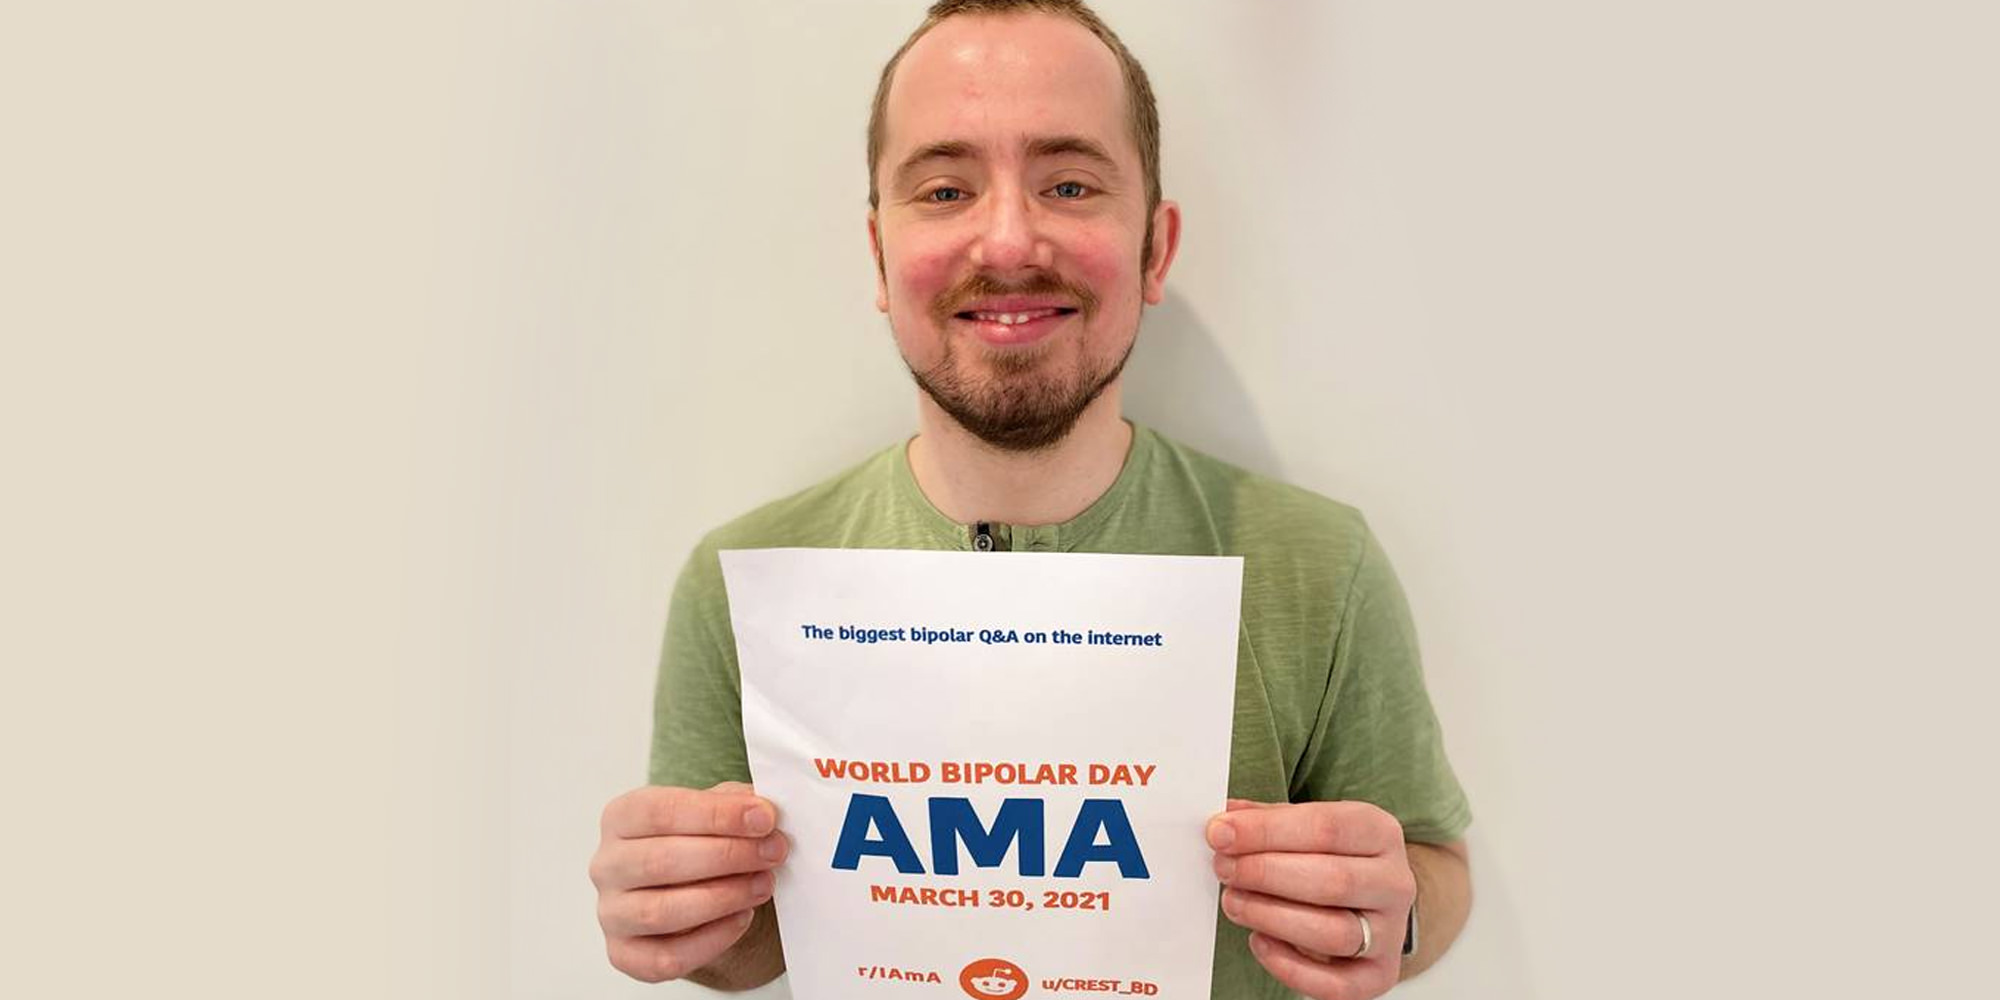 Thomas is standing in front of a beige walling holding up the AMA proof sign. He is Caucasian, with short, close-cropped brown hair and a slight beard. He is wearing a green t-shirt.